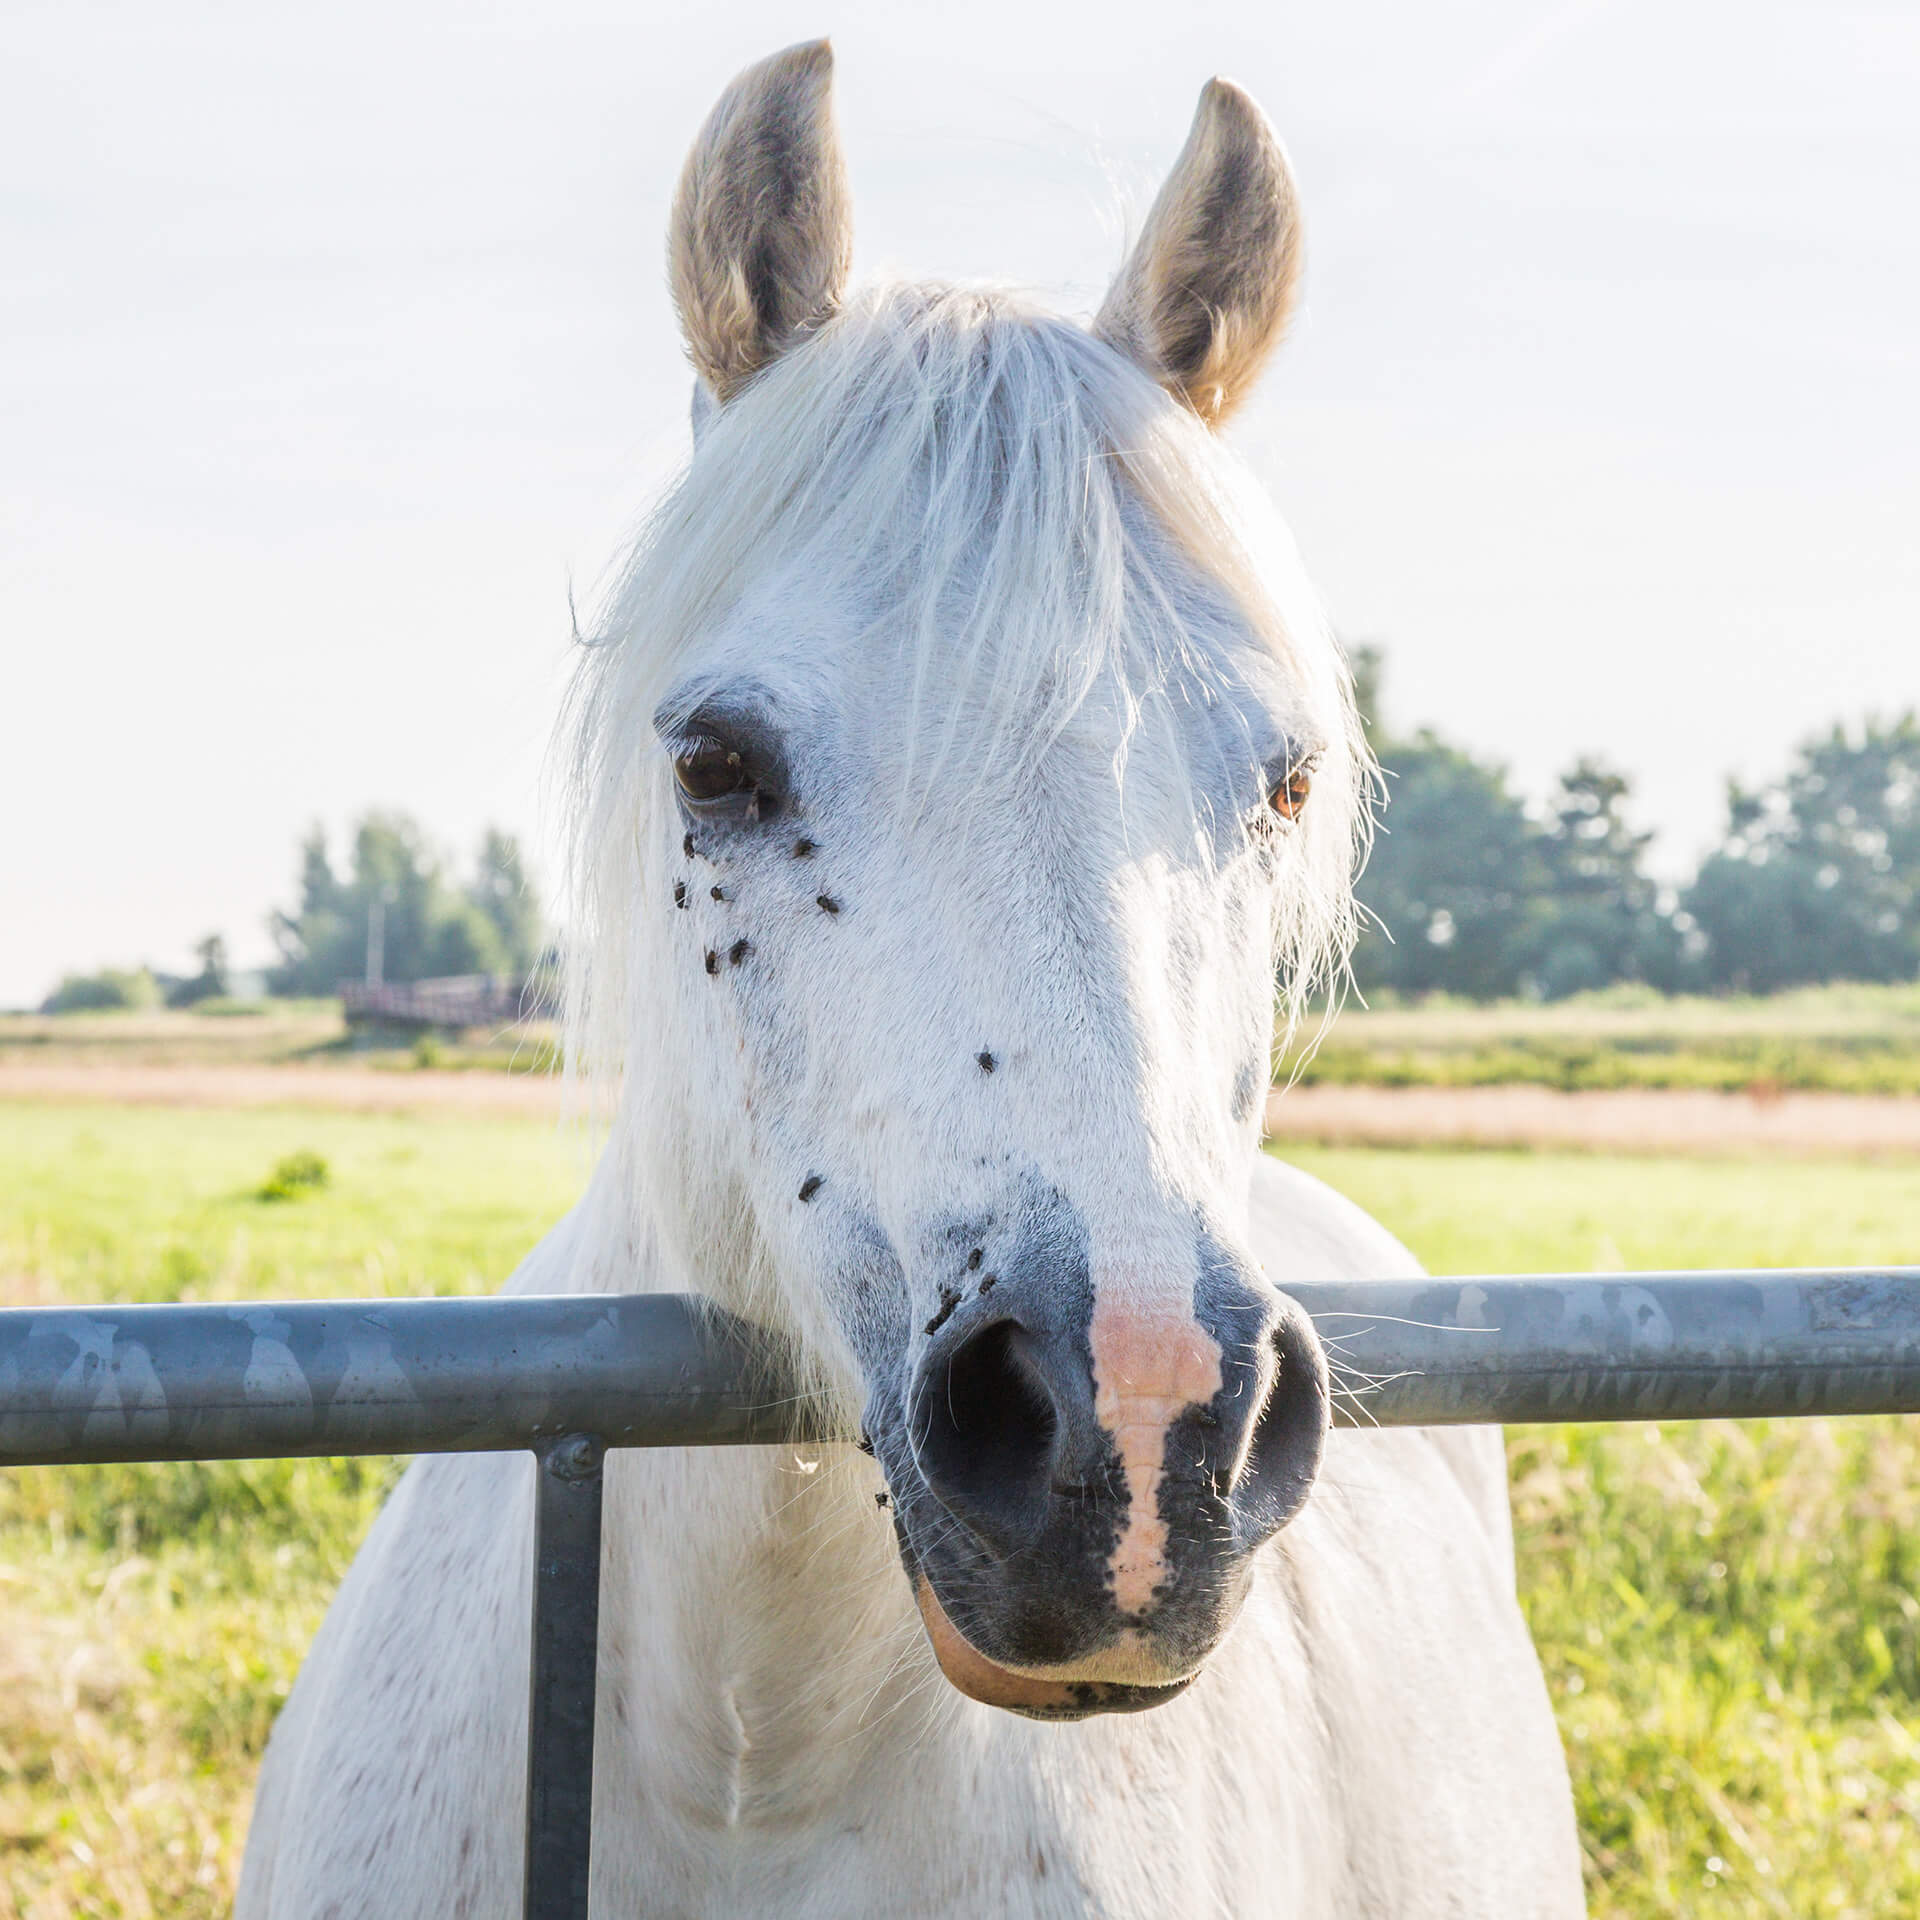 gray horse with flies on face